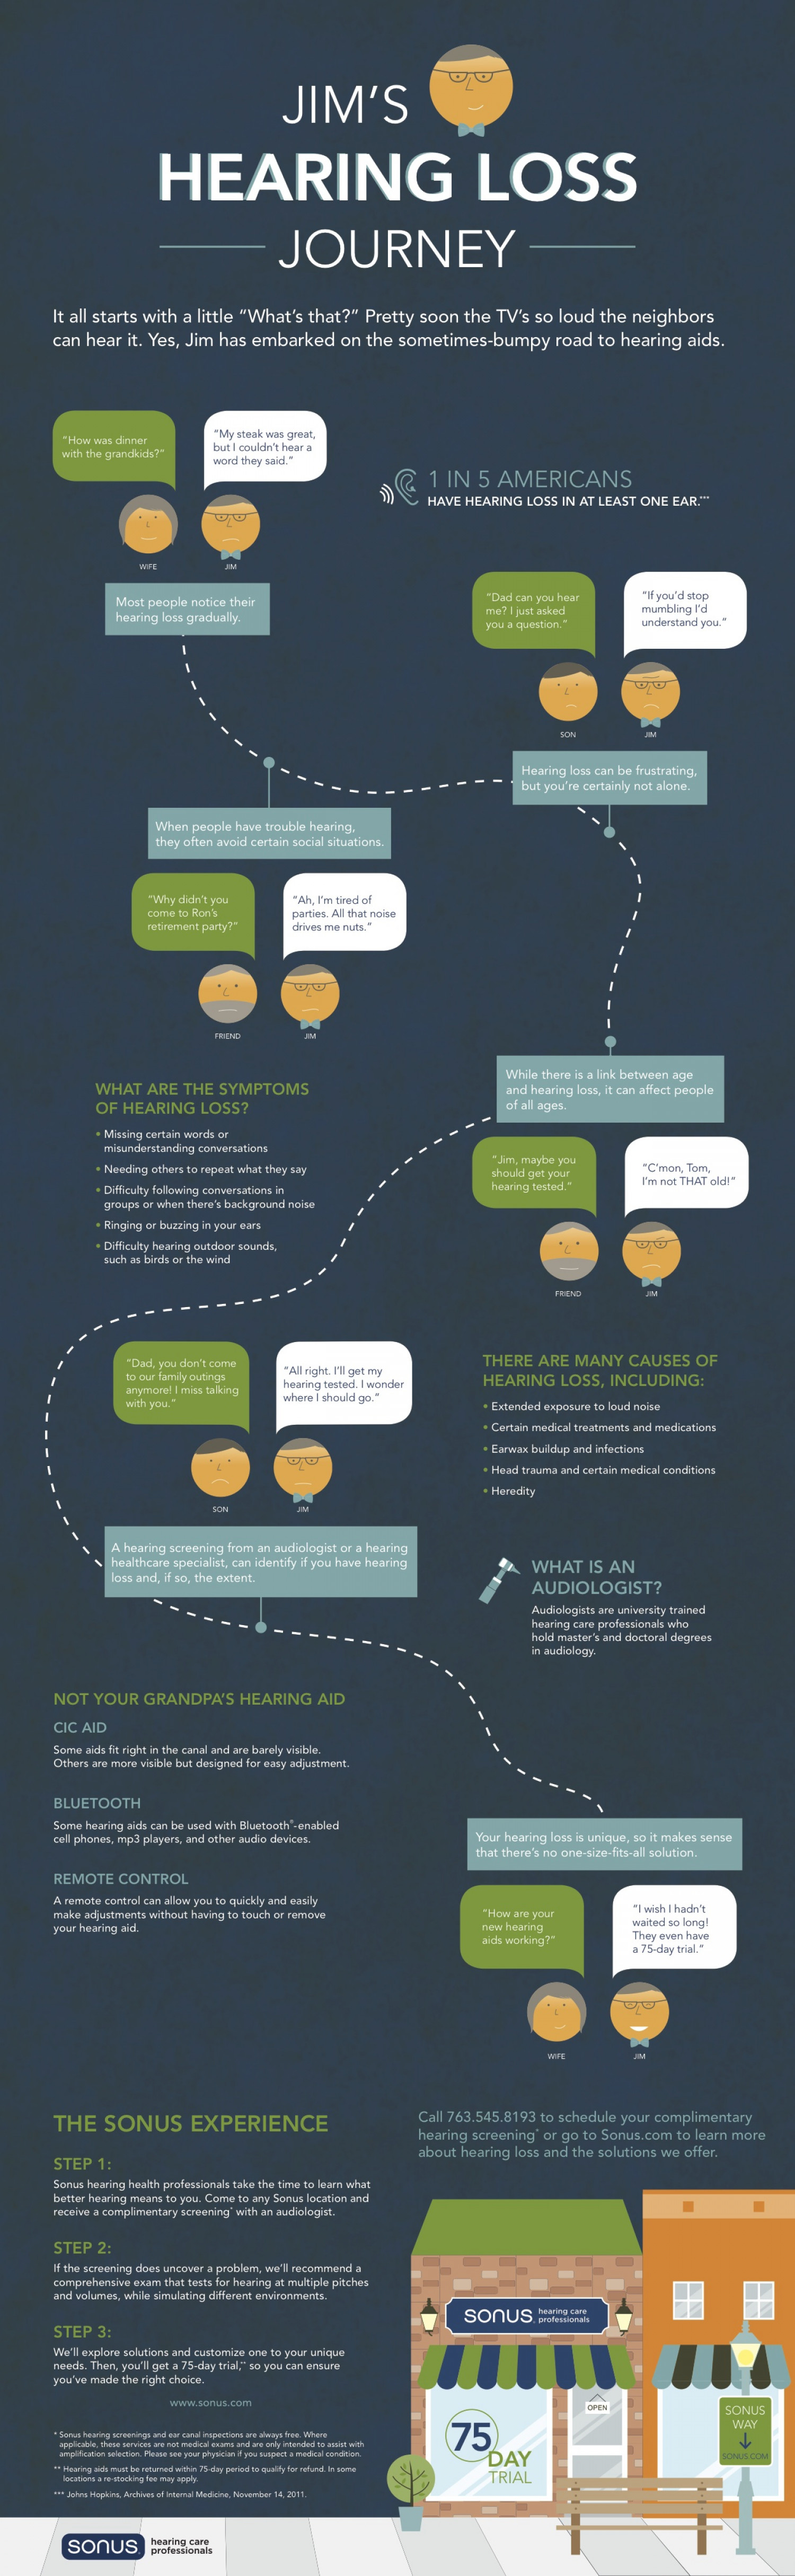 The Hearing Loss Journey Infographic